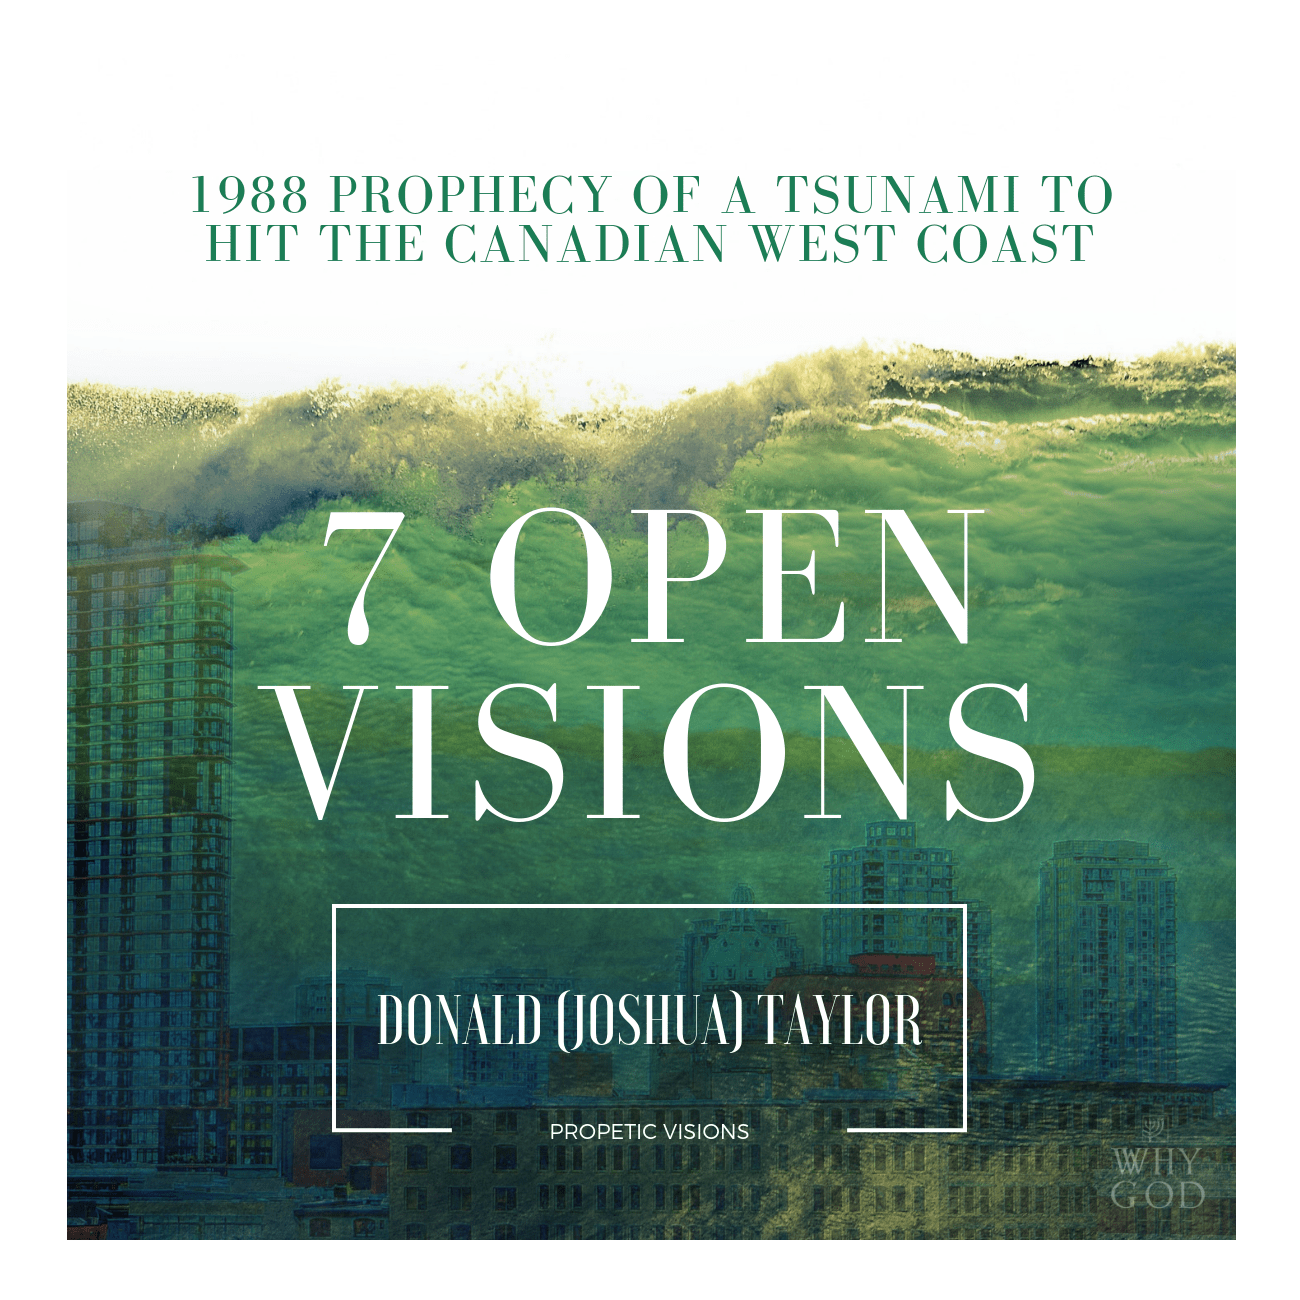 7 Open Visions – 1988 Prophecy of a Tsunami to Hit the West